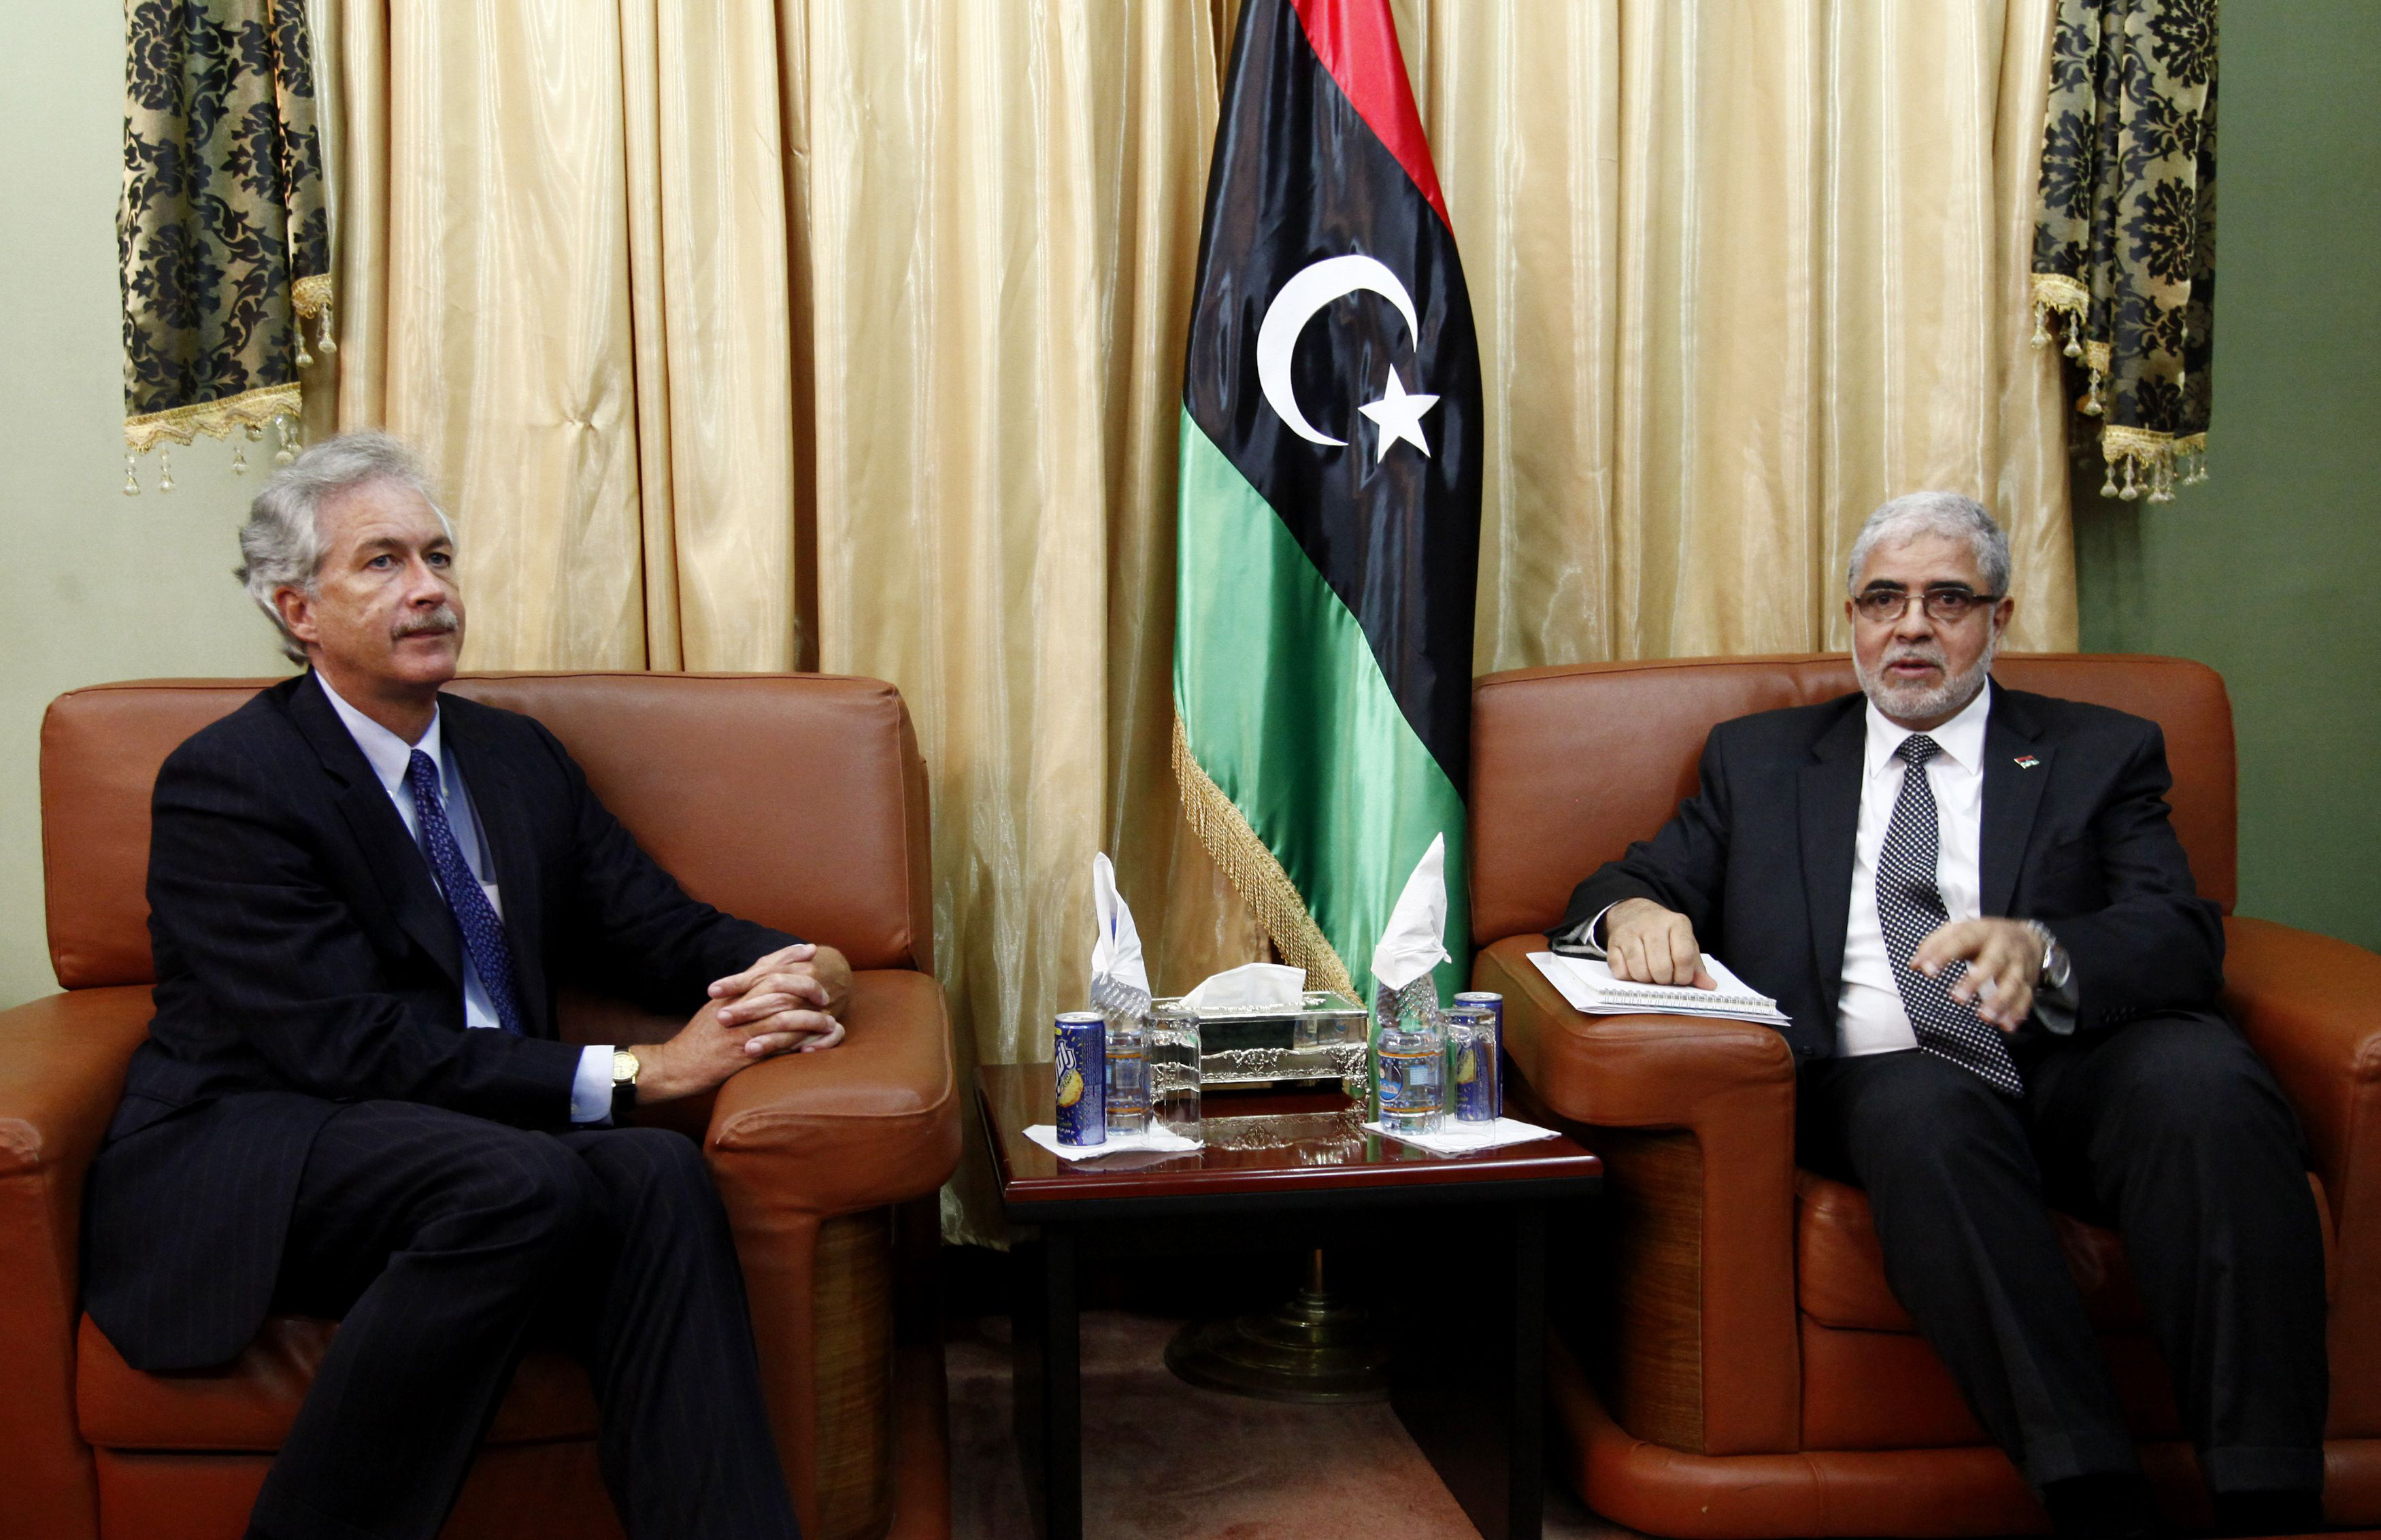 Libya's Prime Minister Mustafa Abu Shagour (R) meets visiting U.S. Deputy Secretary of State William Burns in Tripoli, Libya, September 20, 2012.